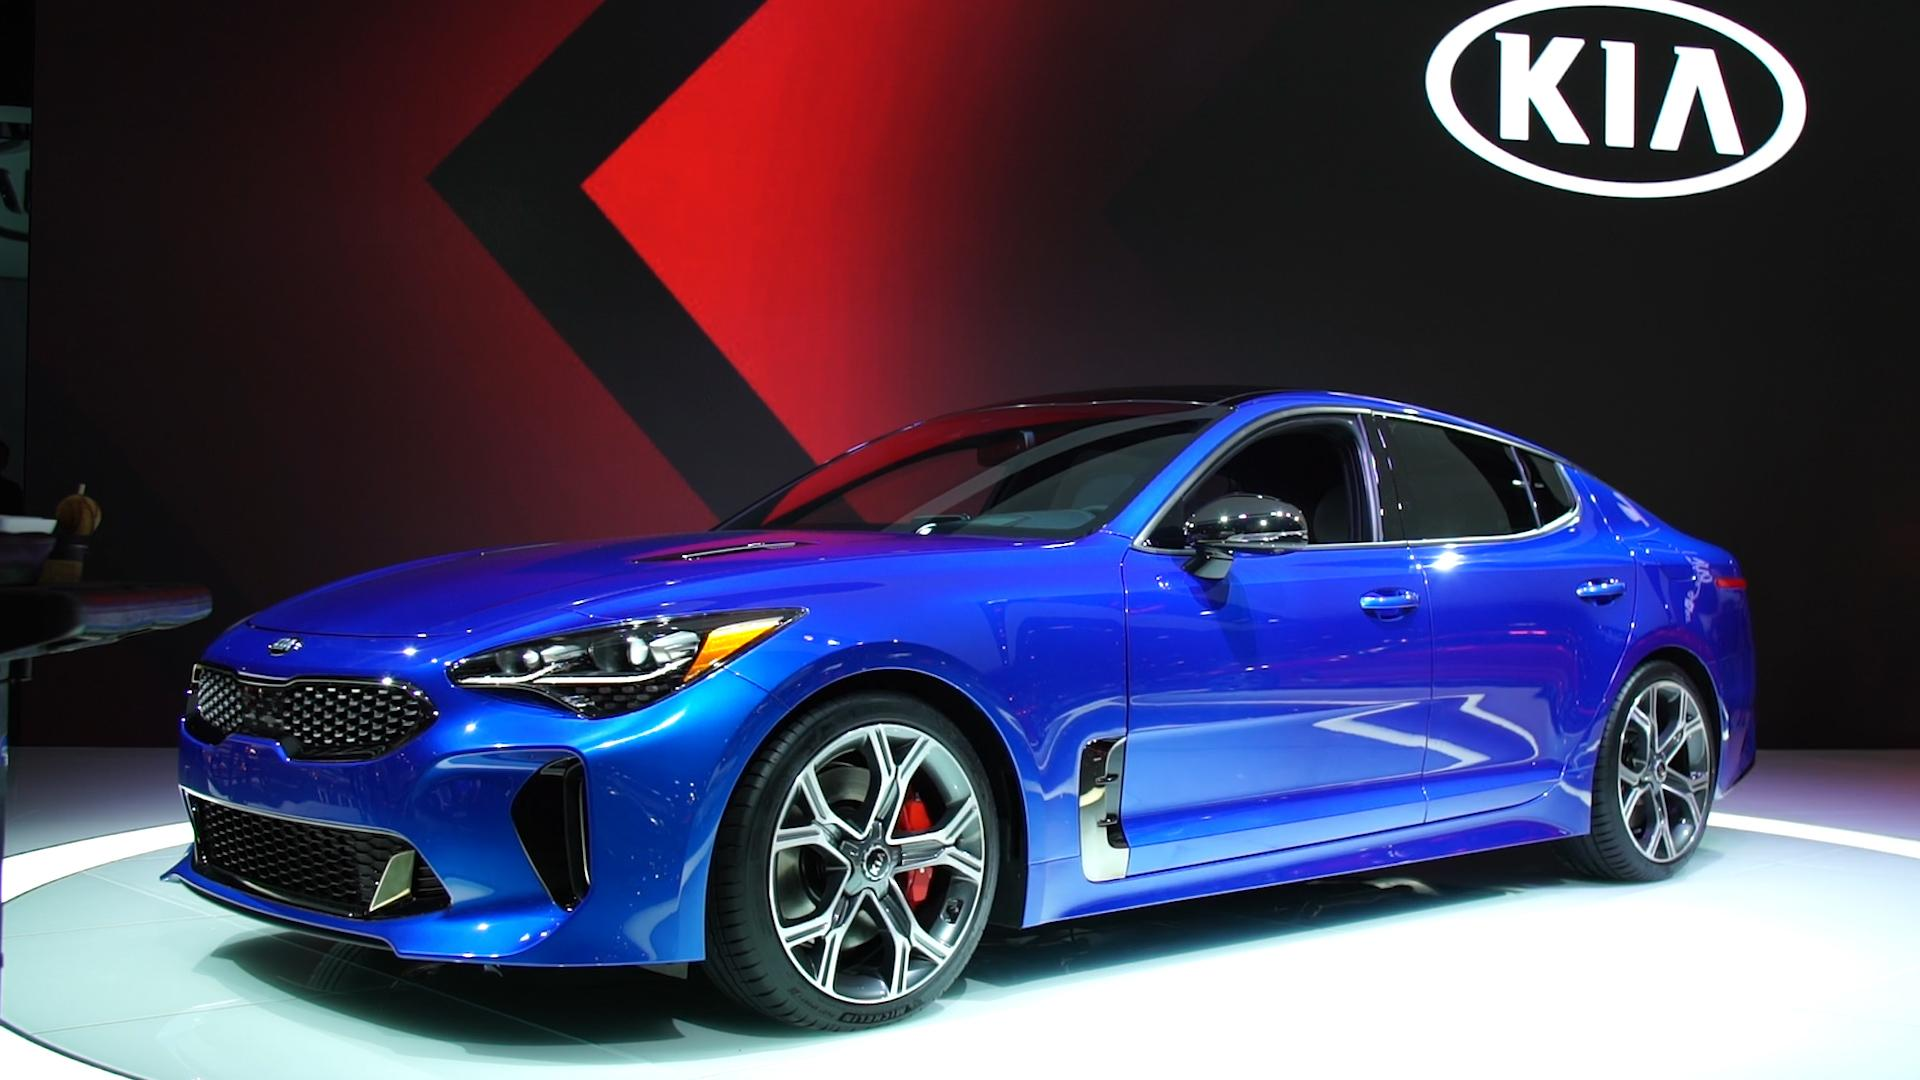 2018 Kia Stinger Preview - Consumer Reports